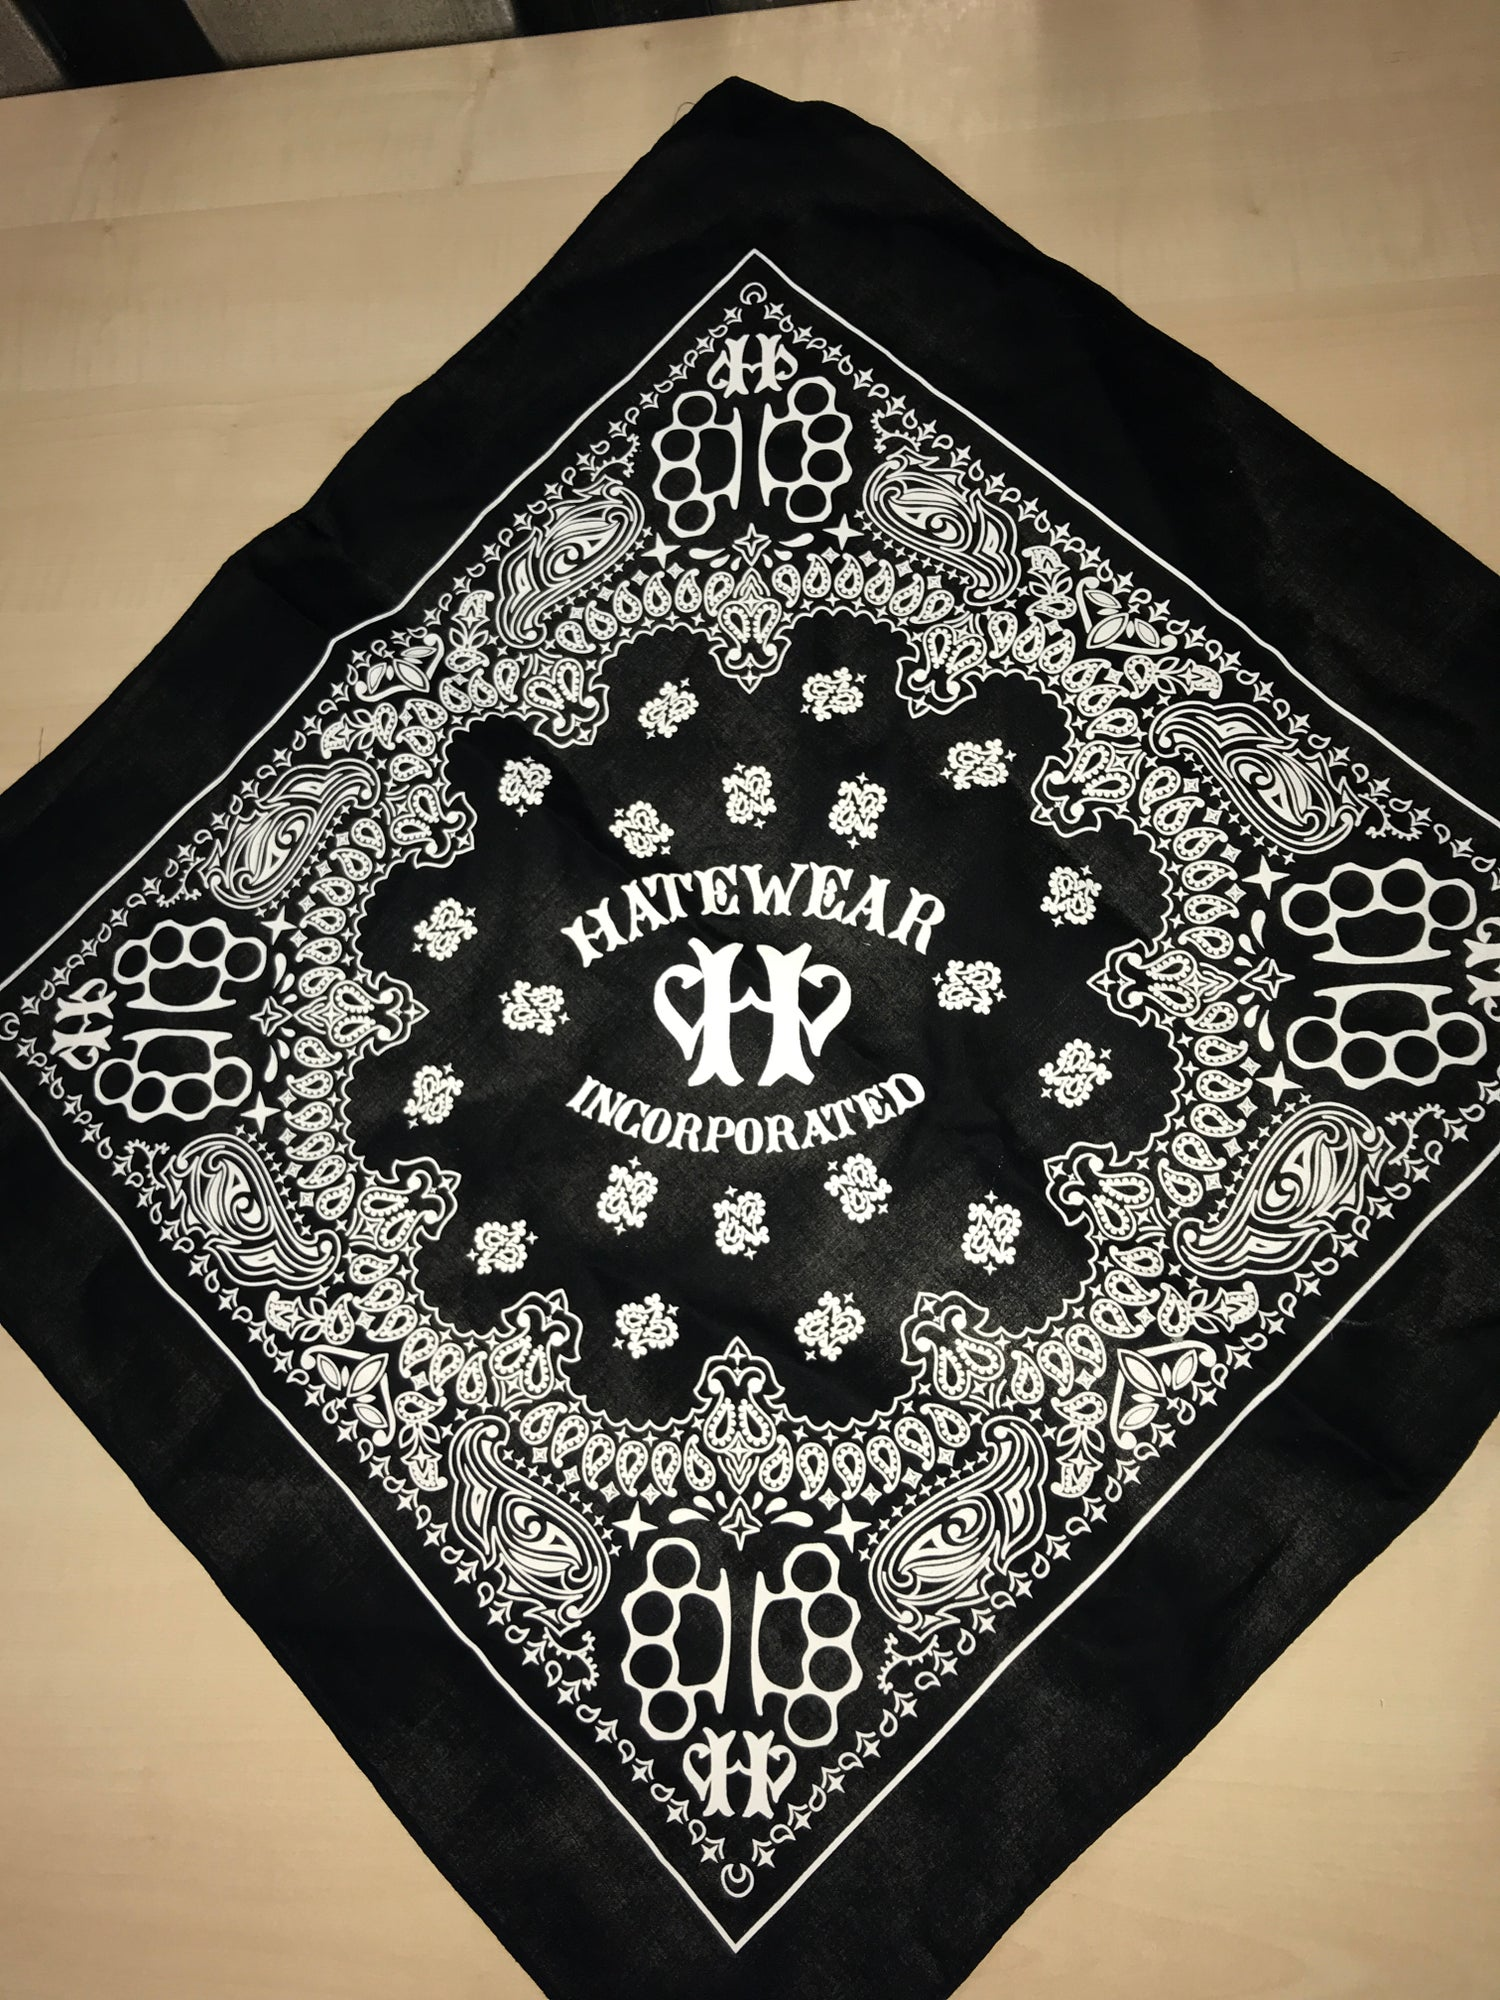 Image of HATEWEAR INC BANDANA